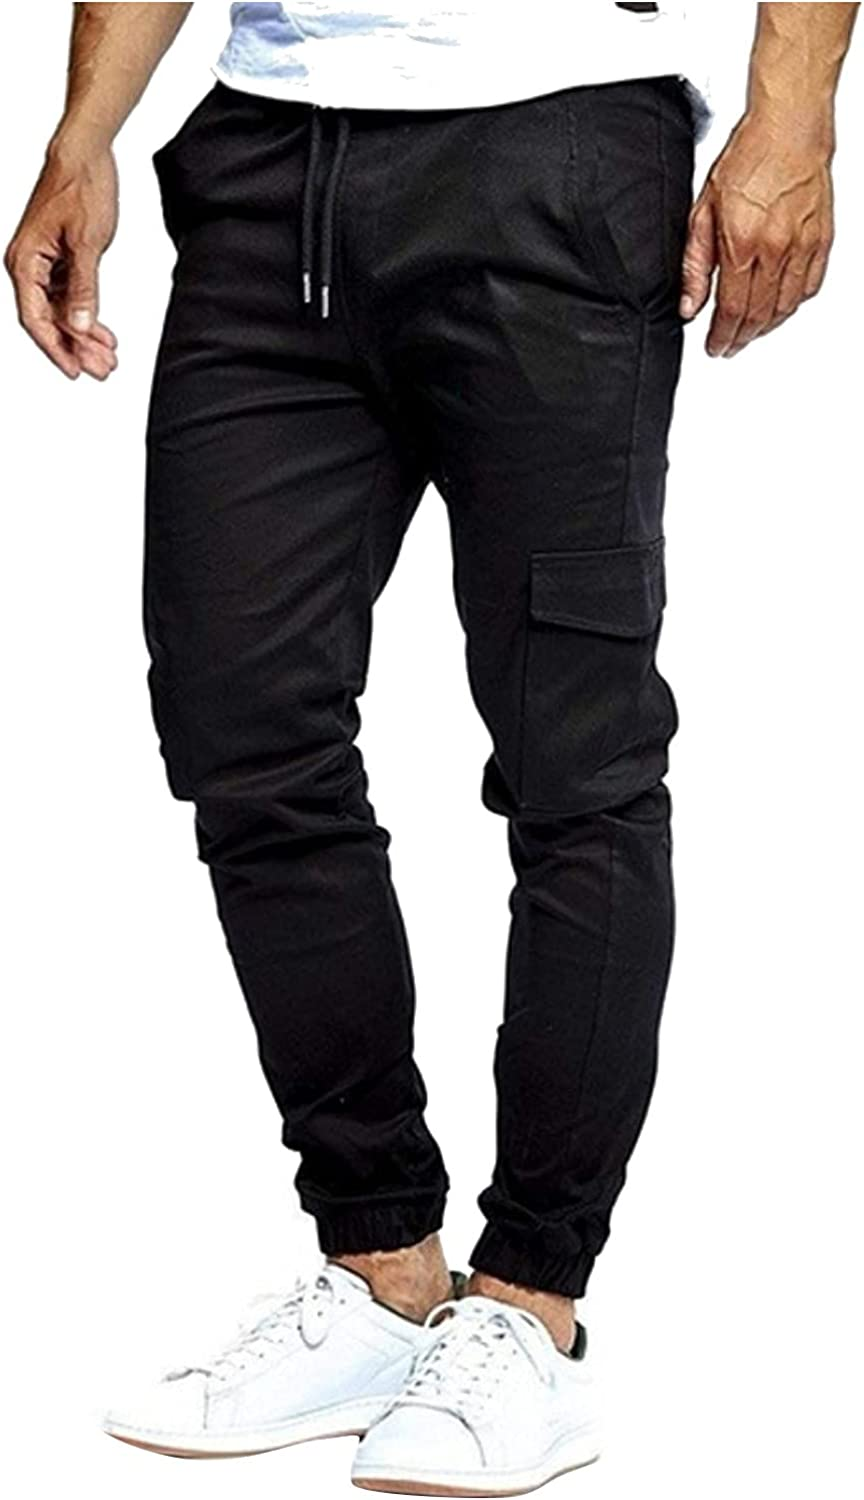 FIRERO Mens Drawstring Pants Straight Fit Casual Pants Outdoor Work Hiking Trousers with Pockets